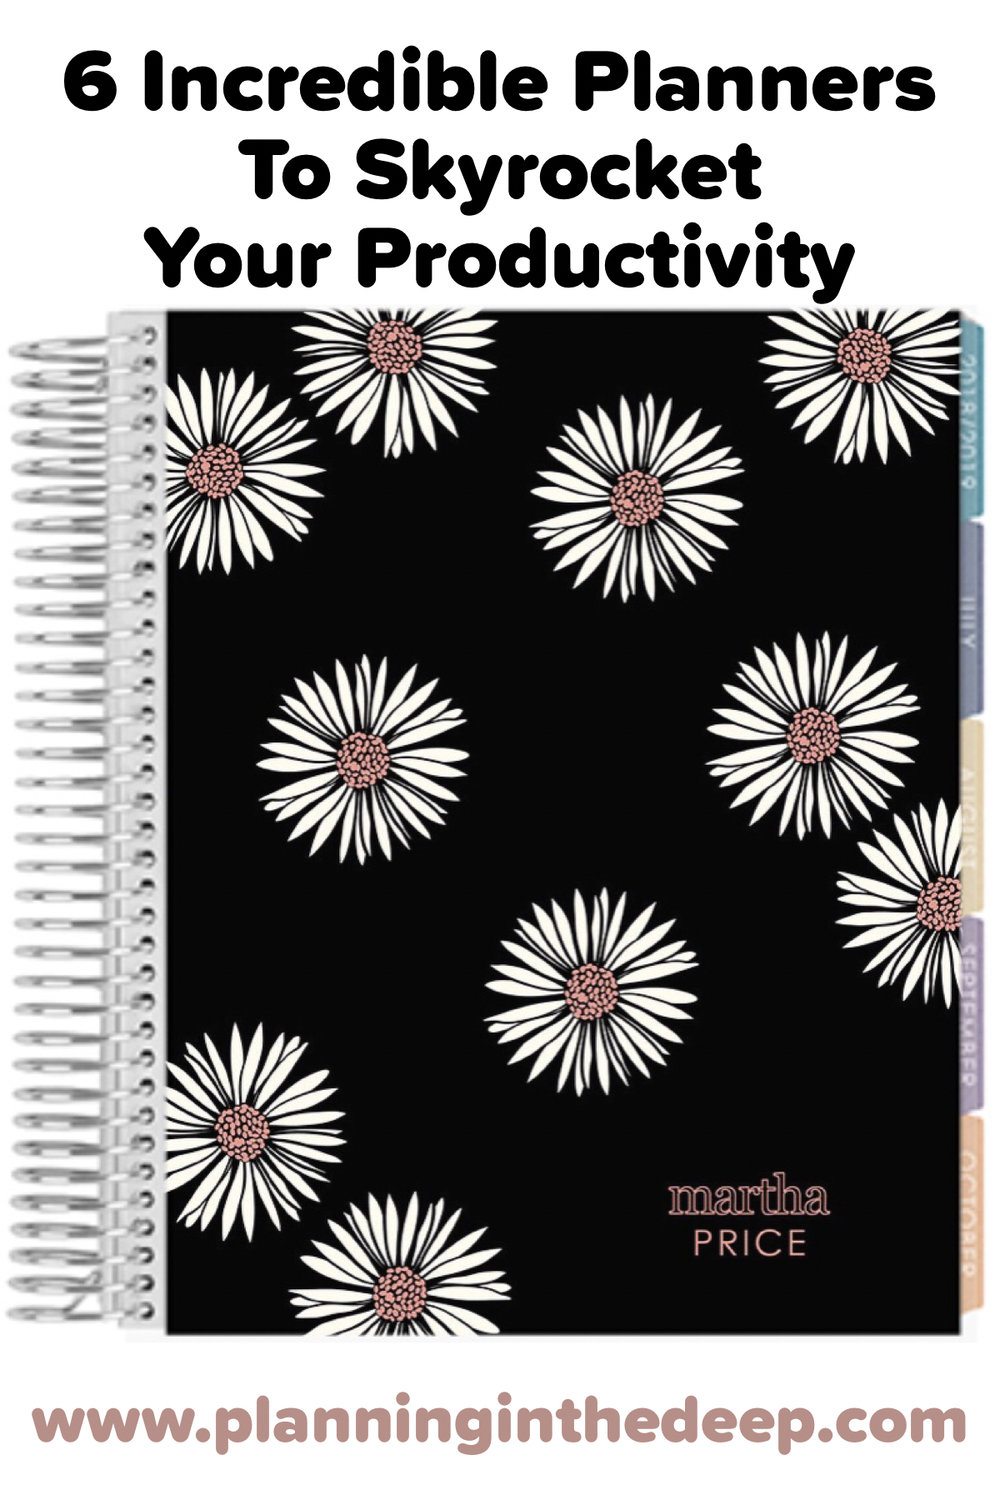 6 Amazing Paper Planners To Skyrocket Your Productivity And Keep Yourself Organized.